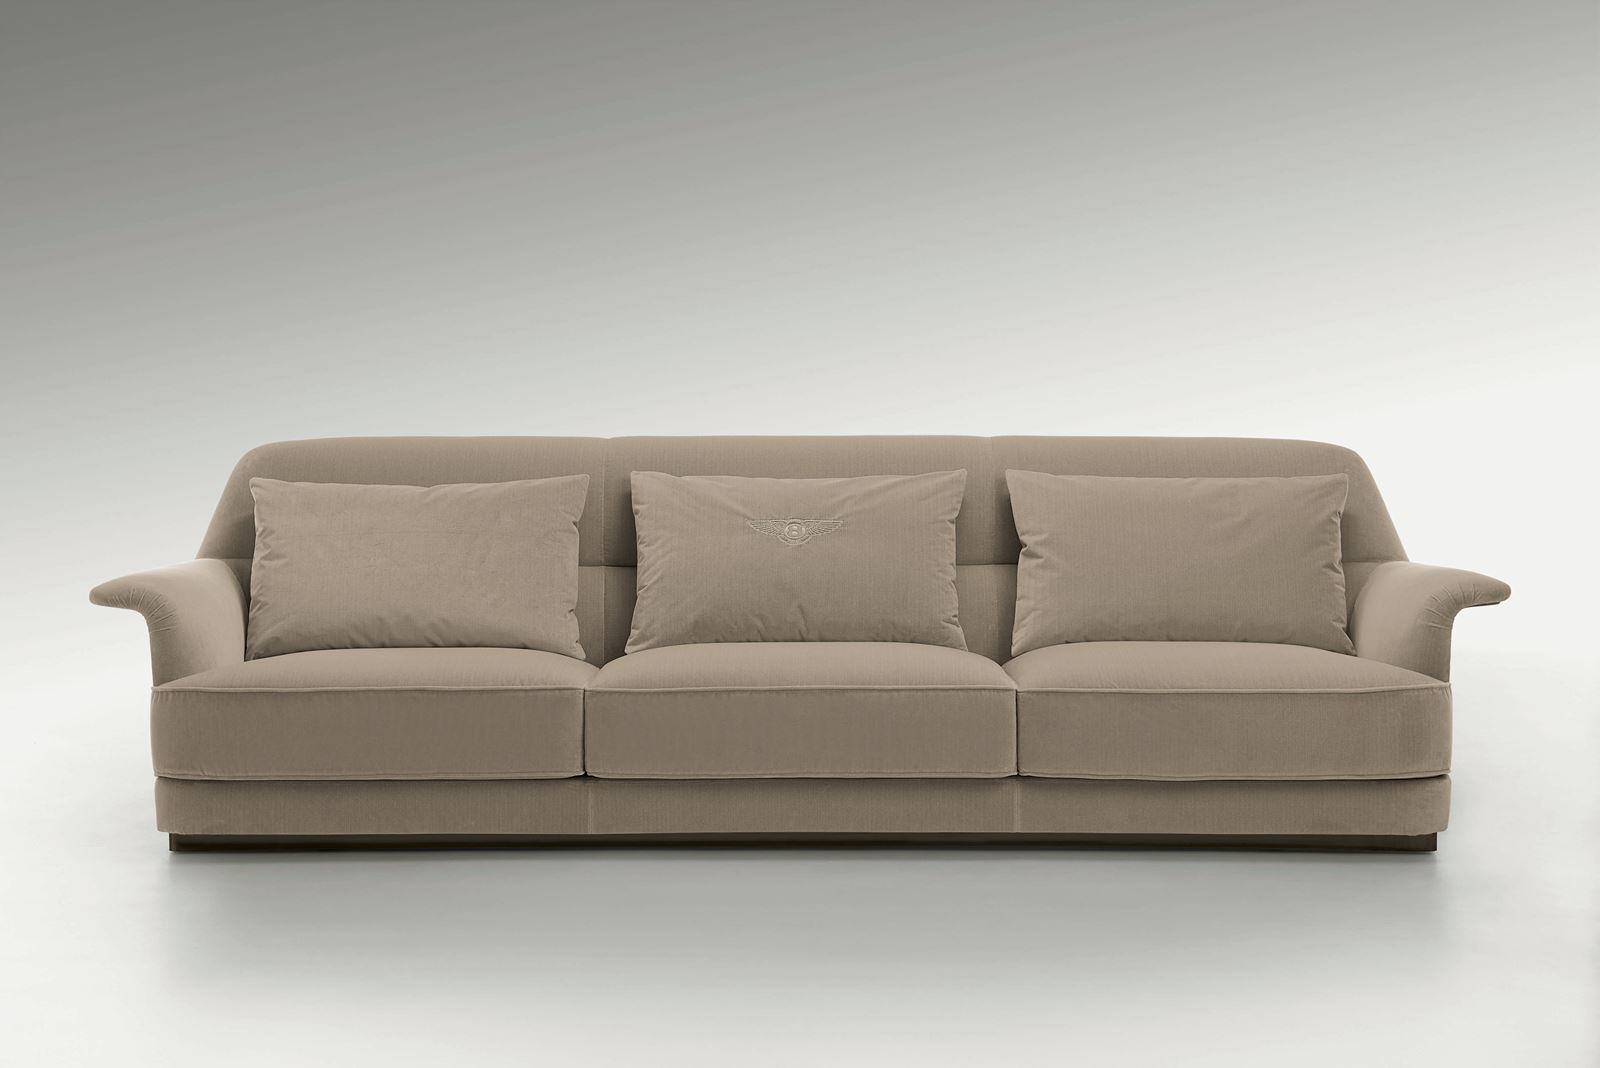 Expensive sectional sofas modern white leather sofa set simplicity that speaks volumes la - Most expensive recliners ...